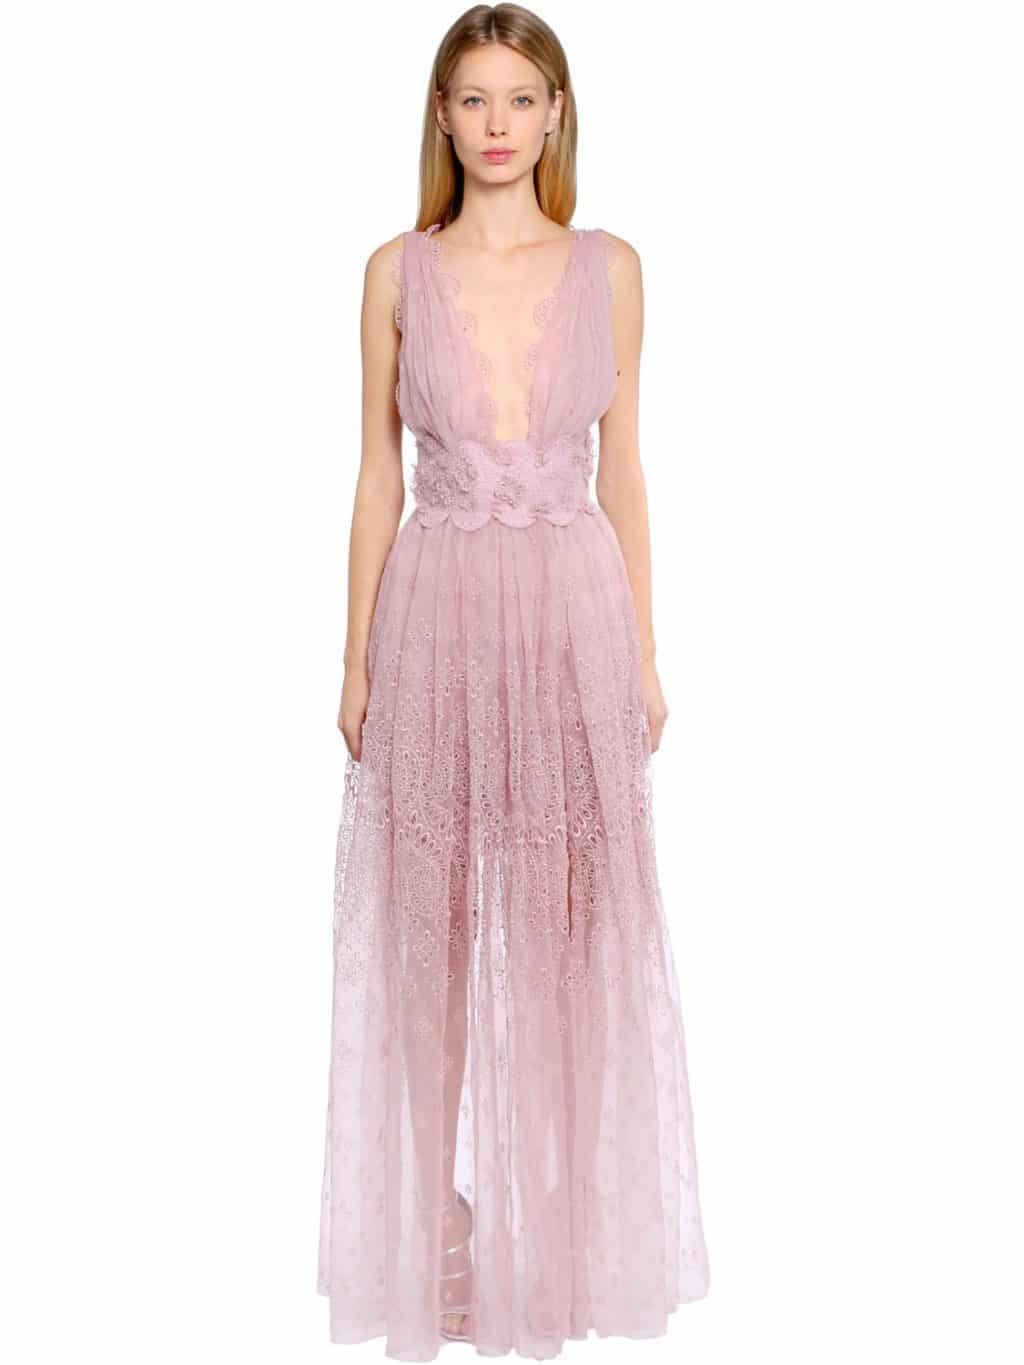 Ermanno scervino eyelet lace organza long pink dress we select jpg  1024x1365 Pink long dress 19ee98dfa50e